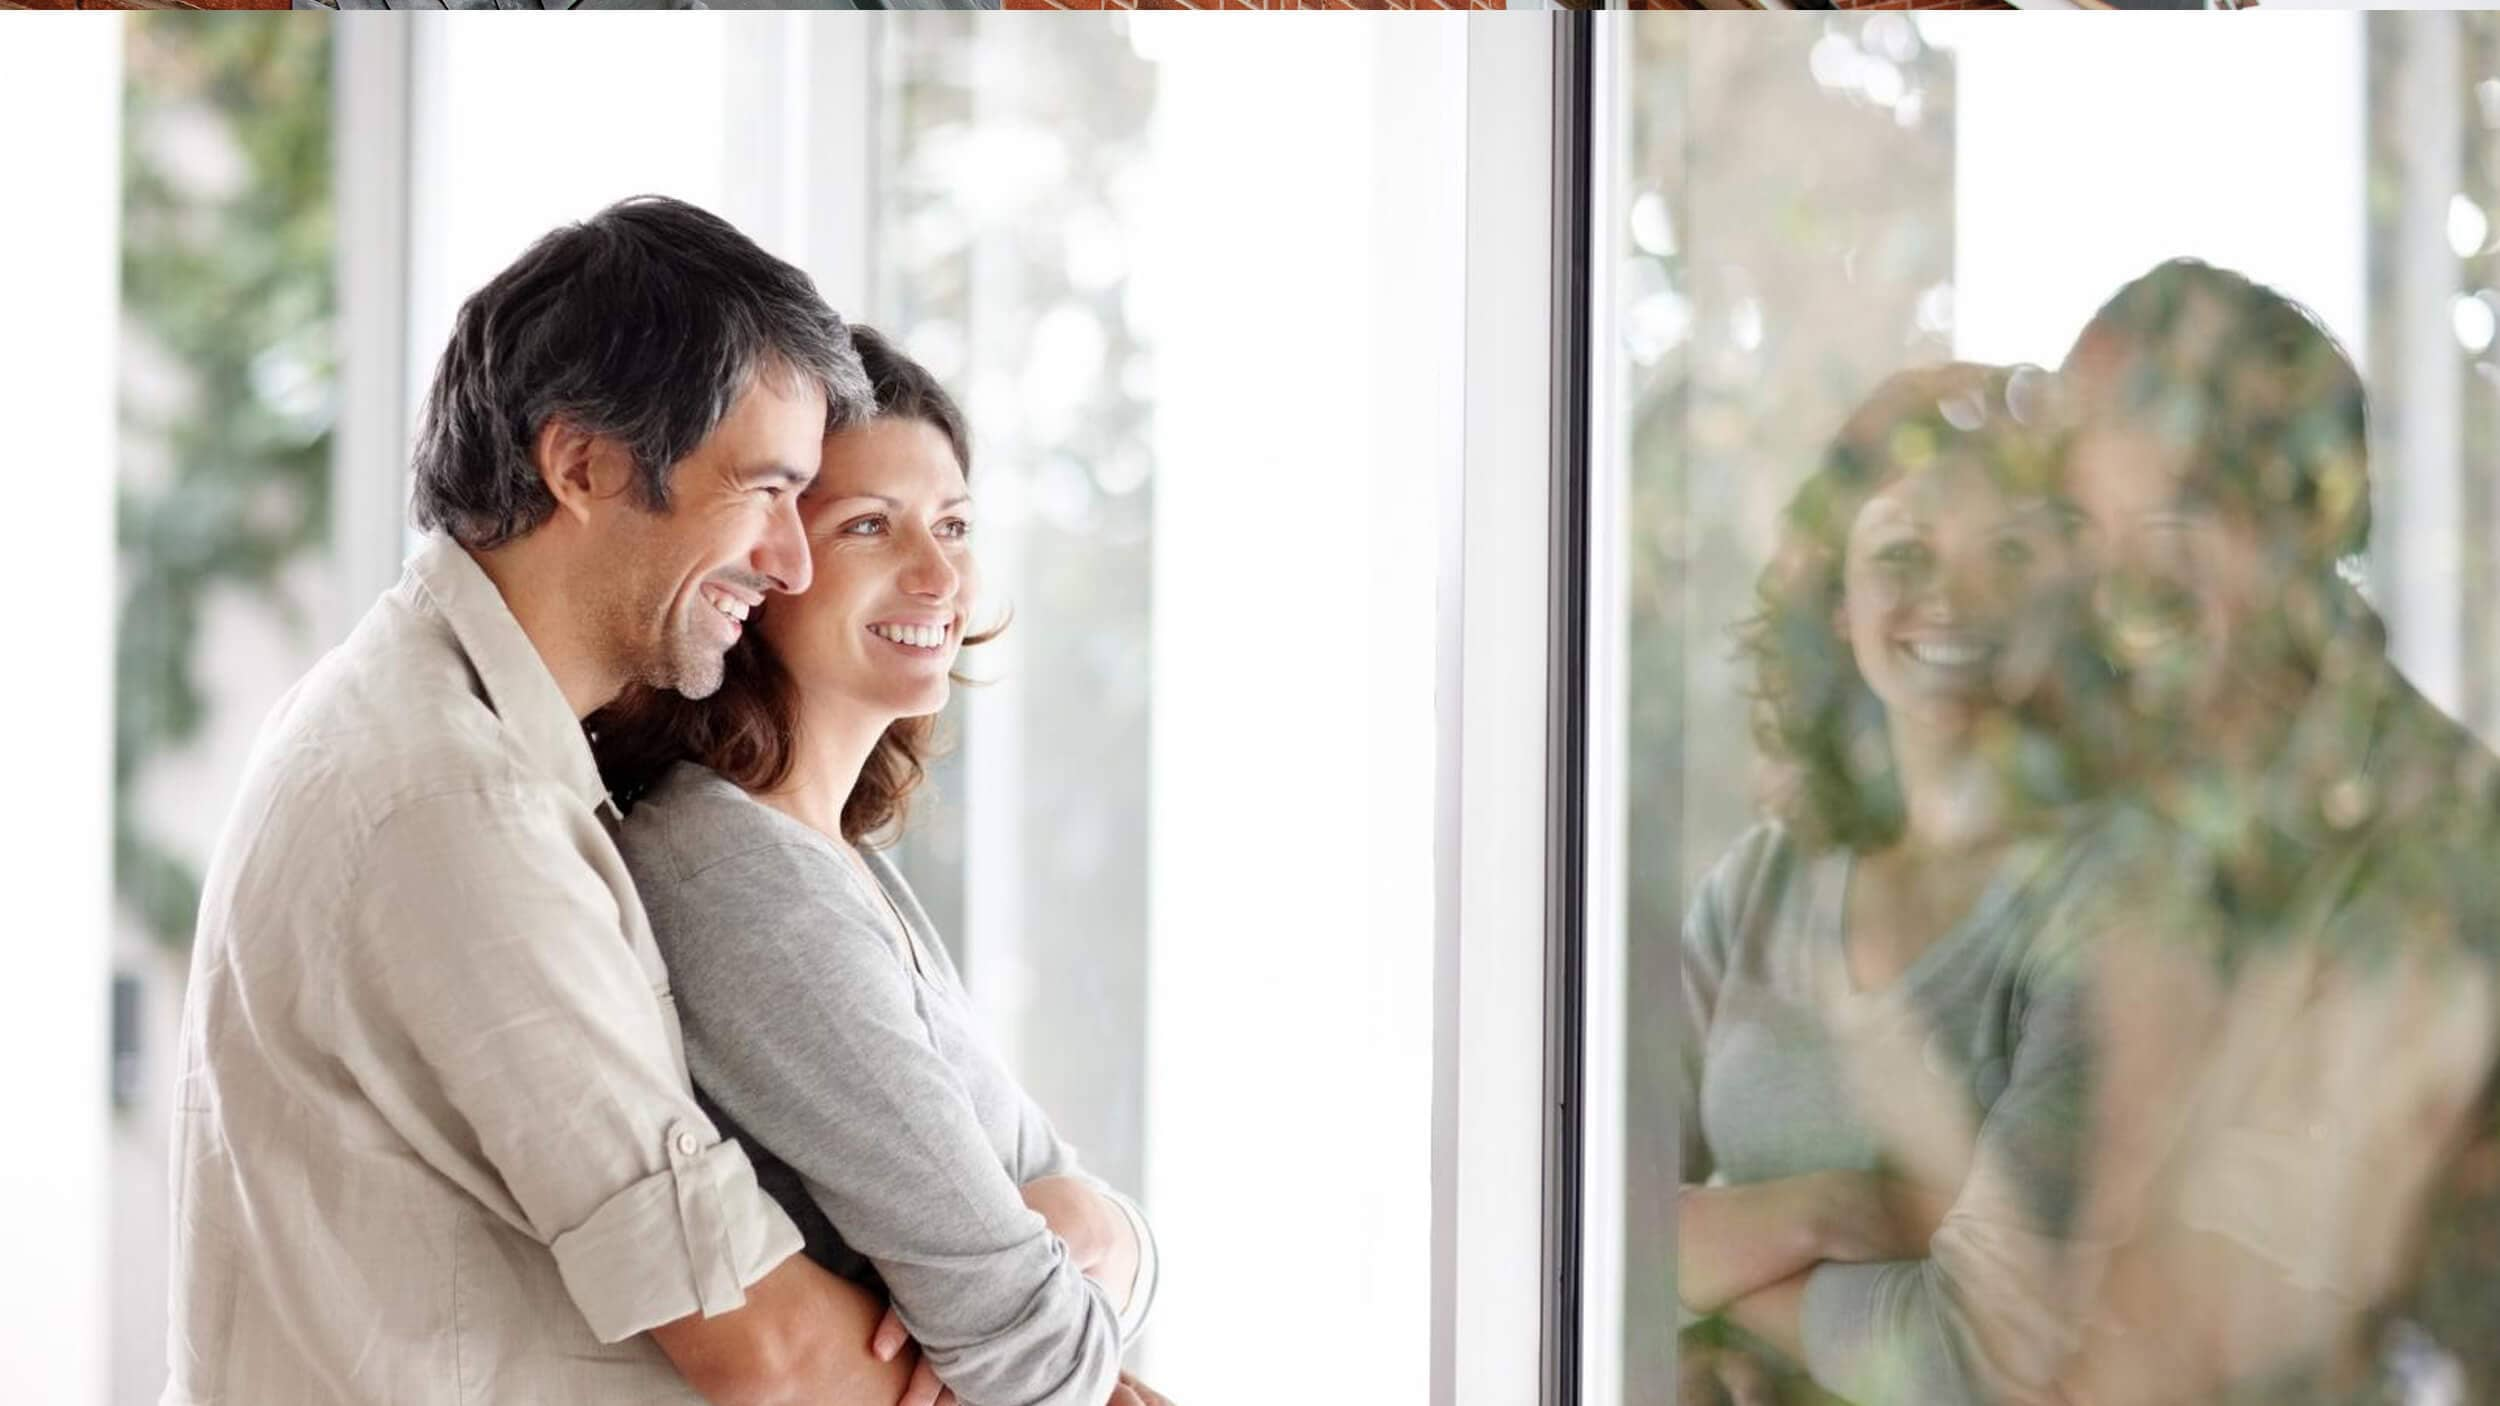 couple hugging and looking at their double glazed windows stock photo